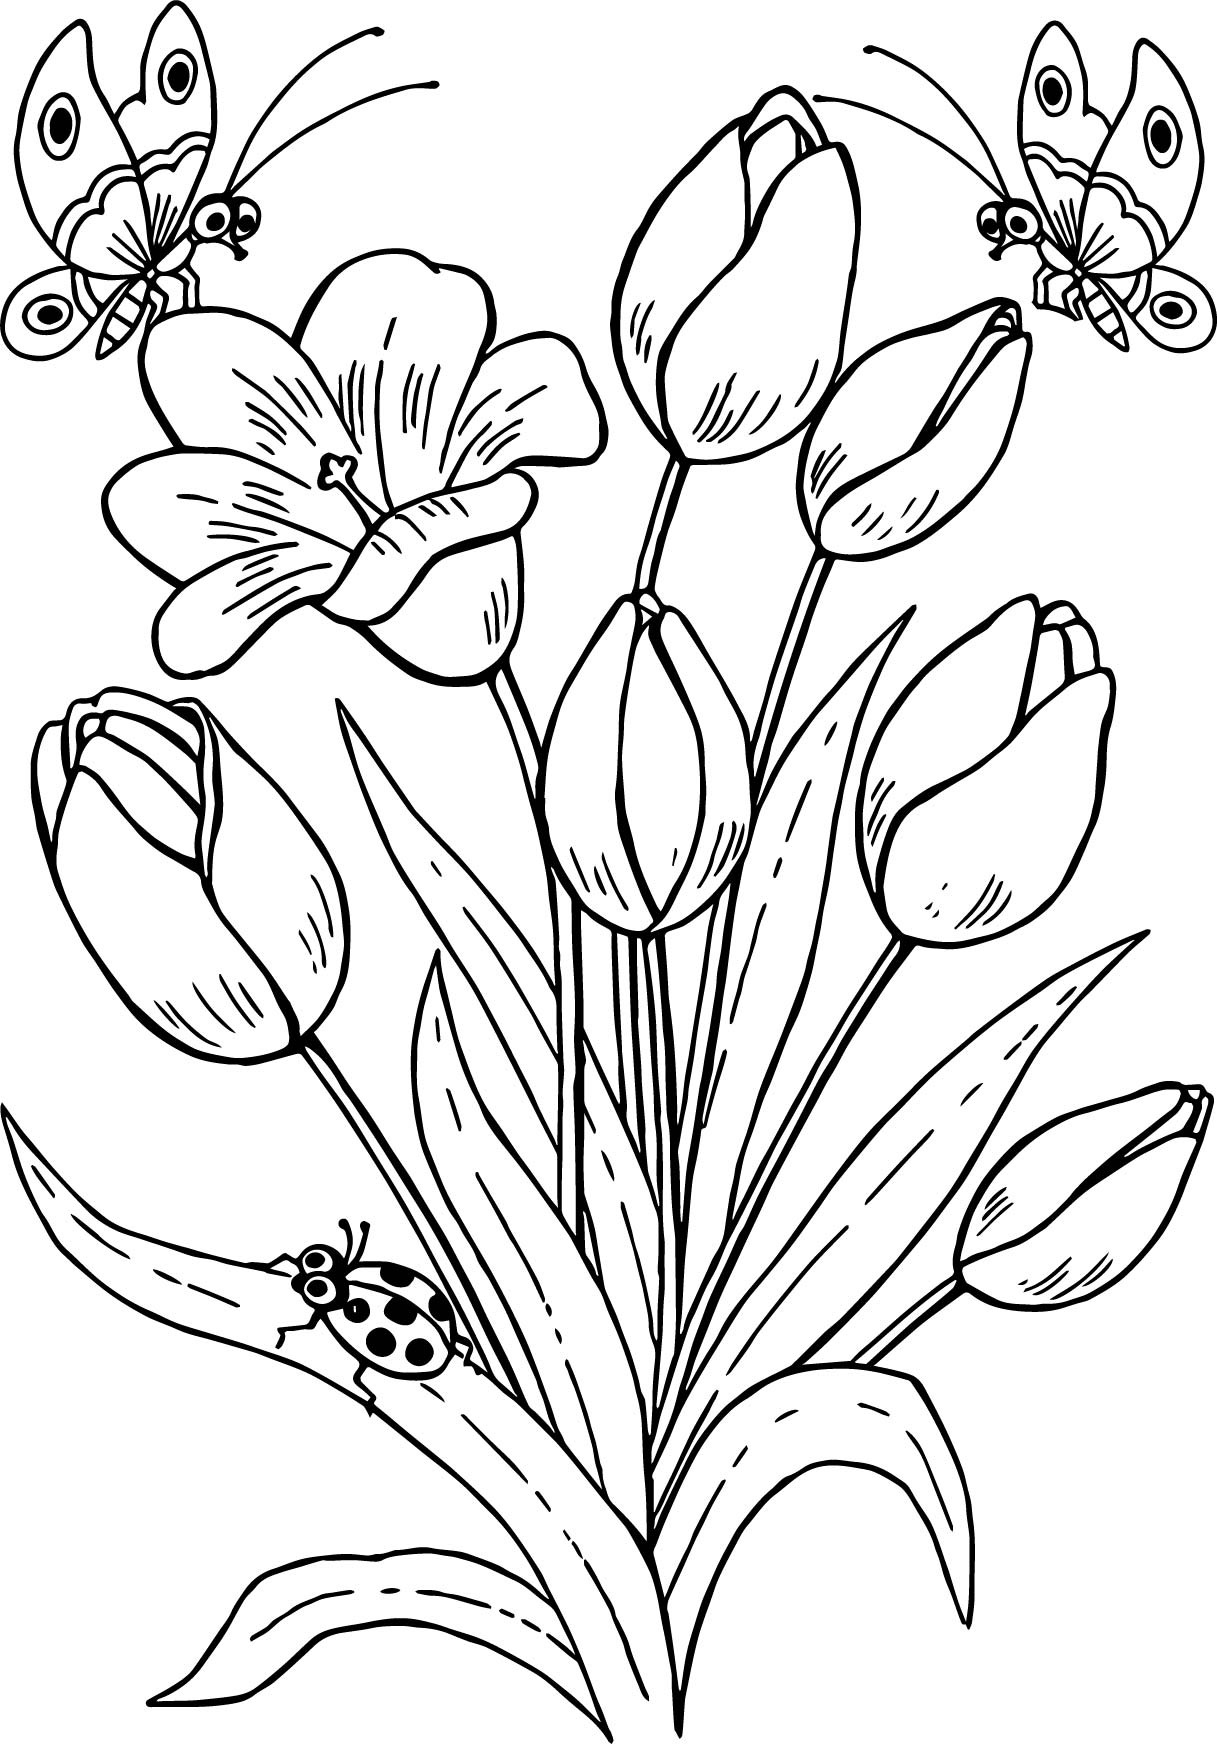 drawing butterfly flowers tulips coloring page wecoloringpage